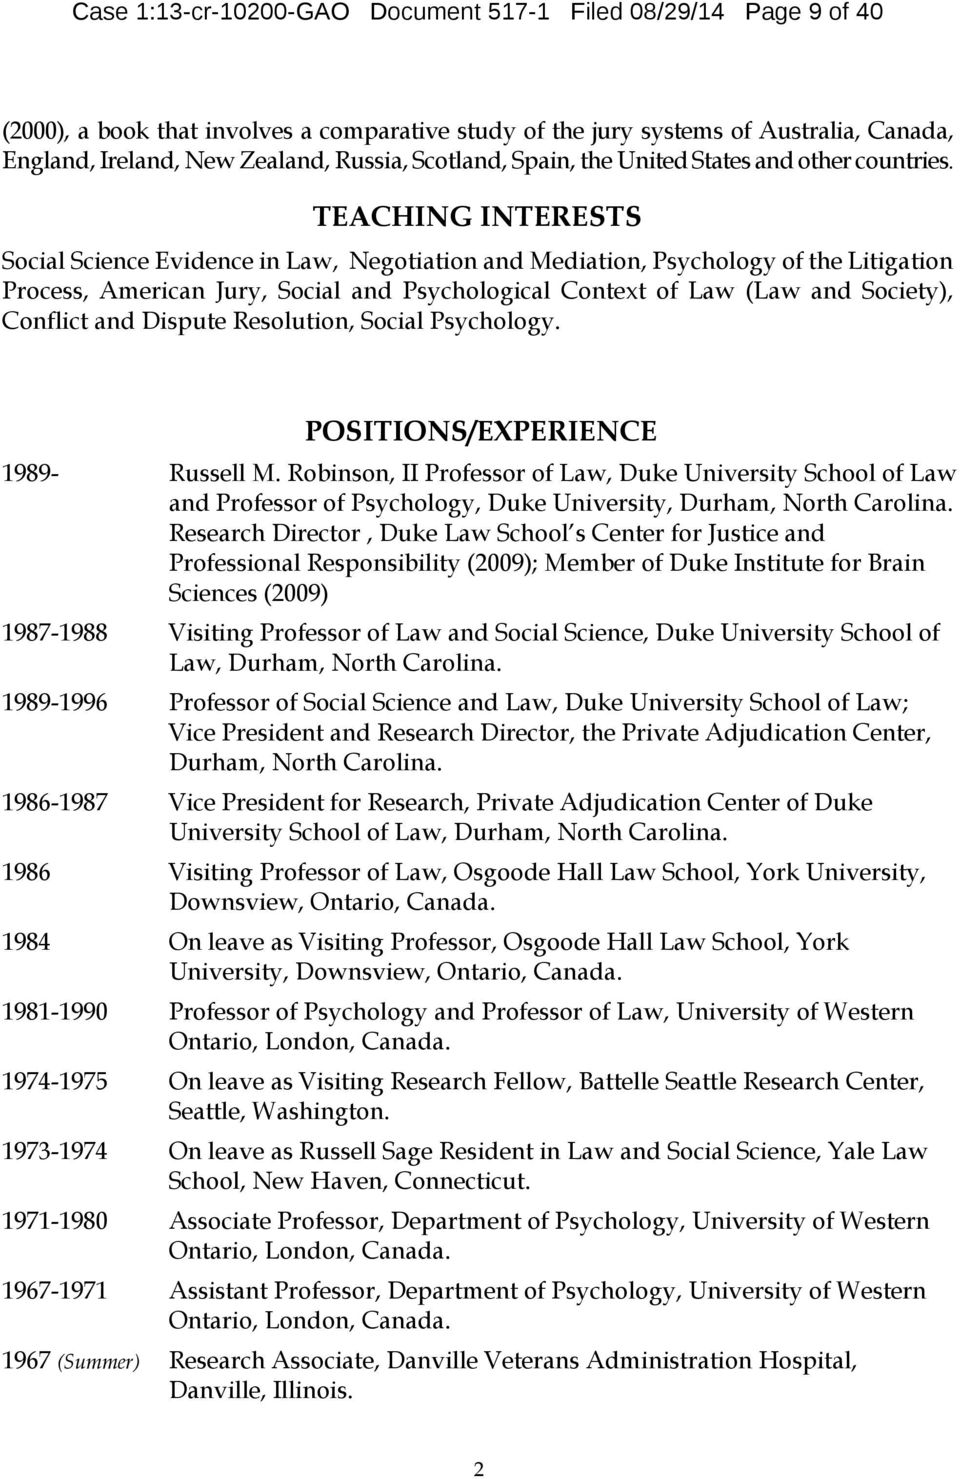 TEACHING INTERESTS Social Science Evidence in Law, Negotiation and Mediation, Psychology of the Litigation Process, American Jury, Social and Psychological Context of Law (Law and Society), Conflict